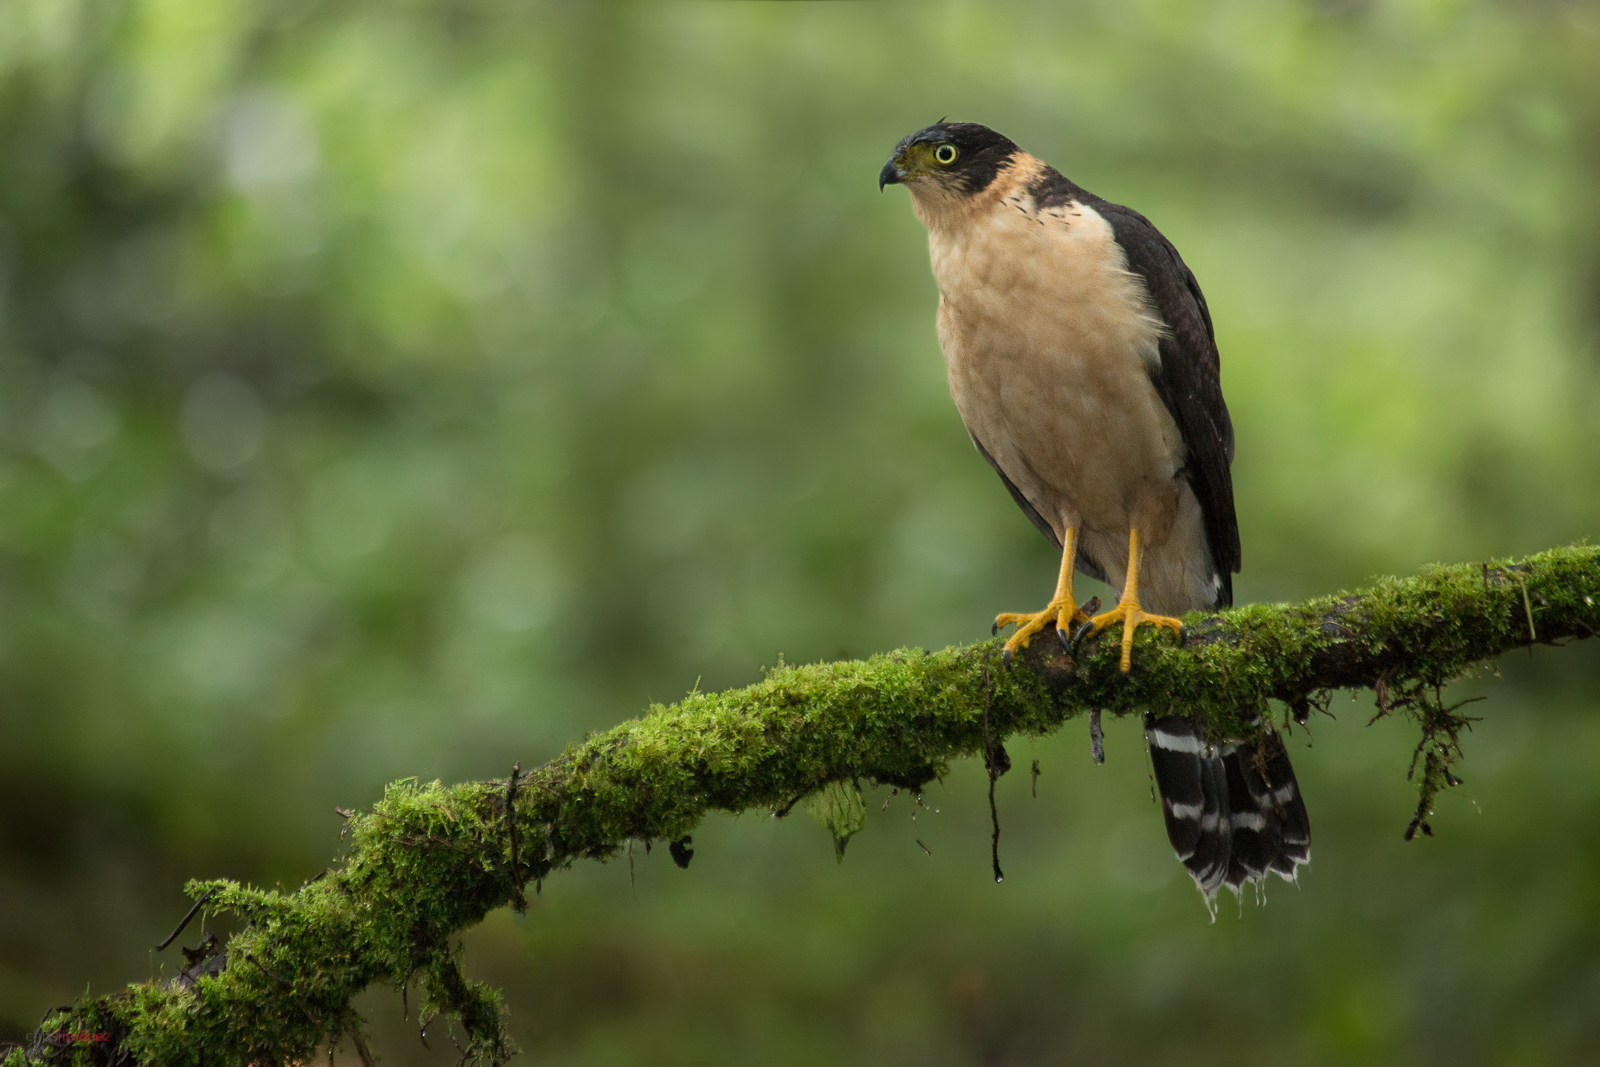 Bicoloured Hawk (Accipiter bicolor) juvenile perched on a mossy branch in the rain at the highlands of Costa Rica